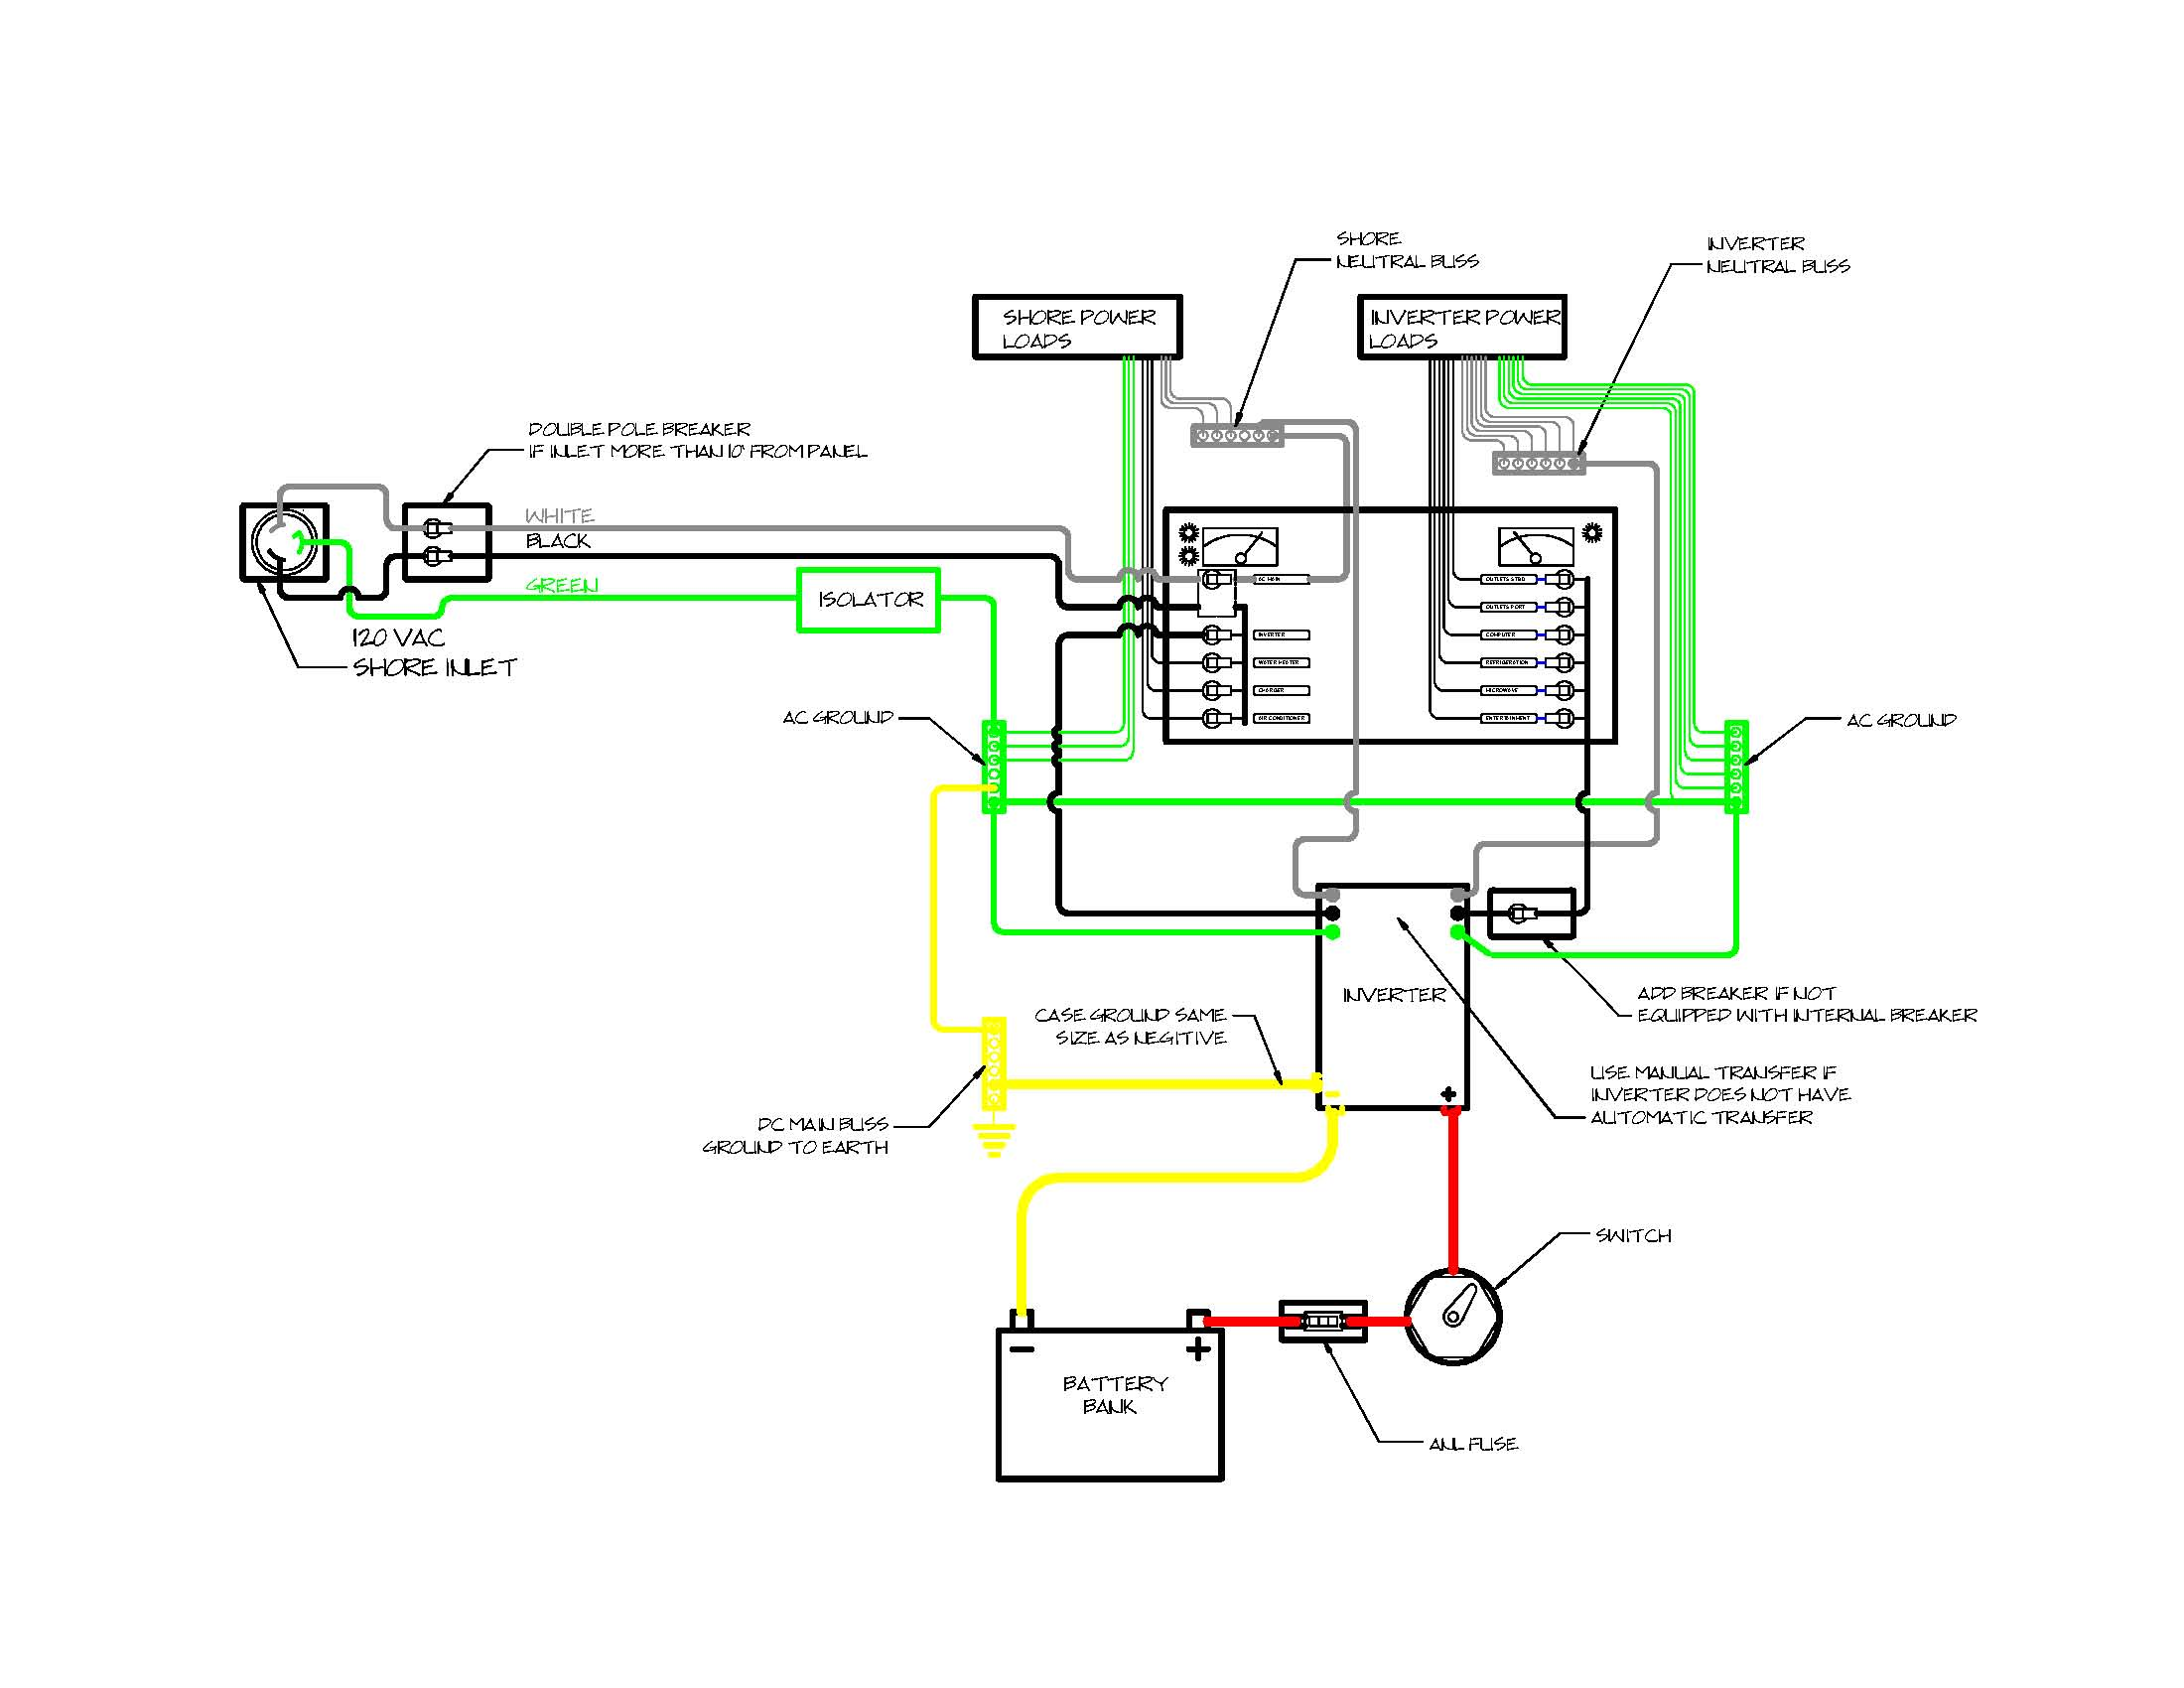 Inverter wiring simplejpg understanding inverter installations project boat zen Split Air Conditioner Wiring Diagram at crackthecode.co